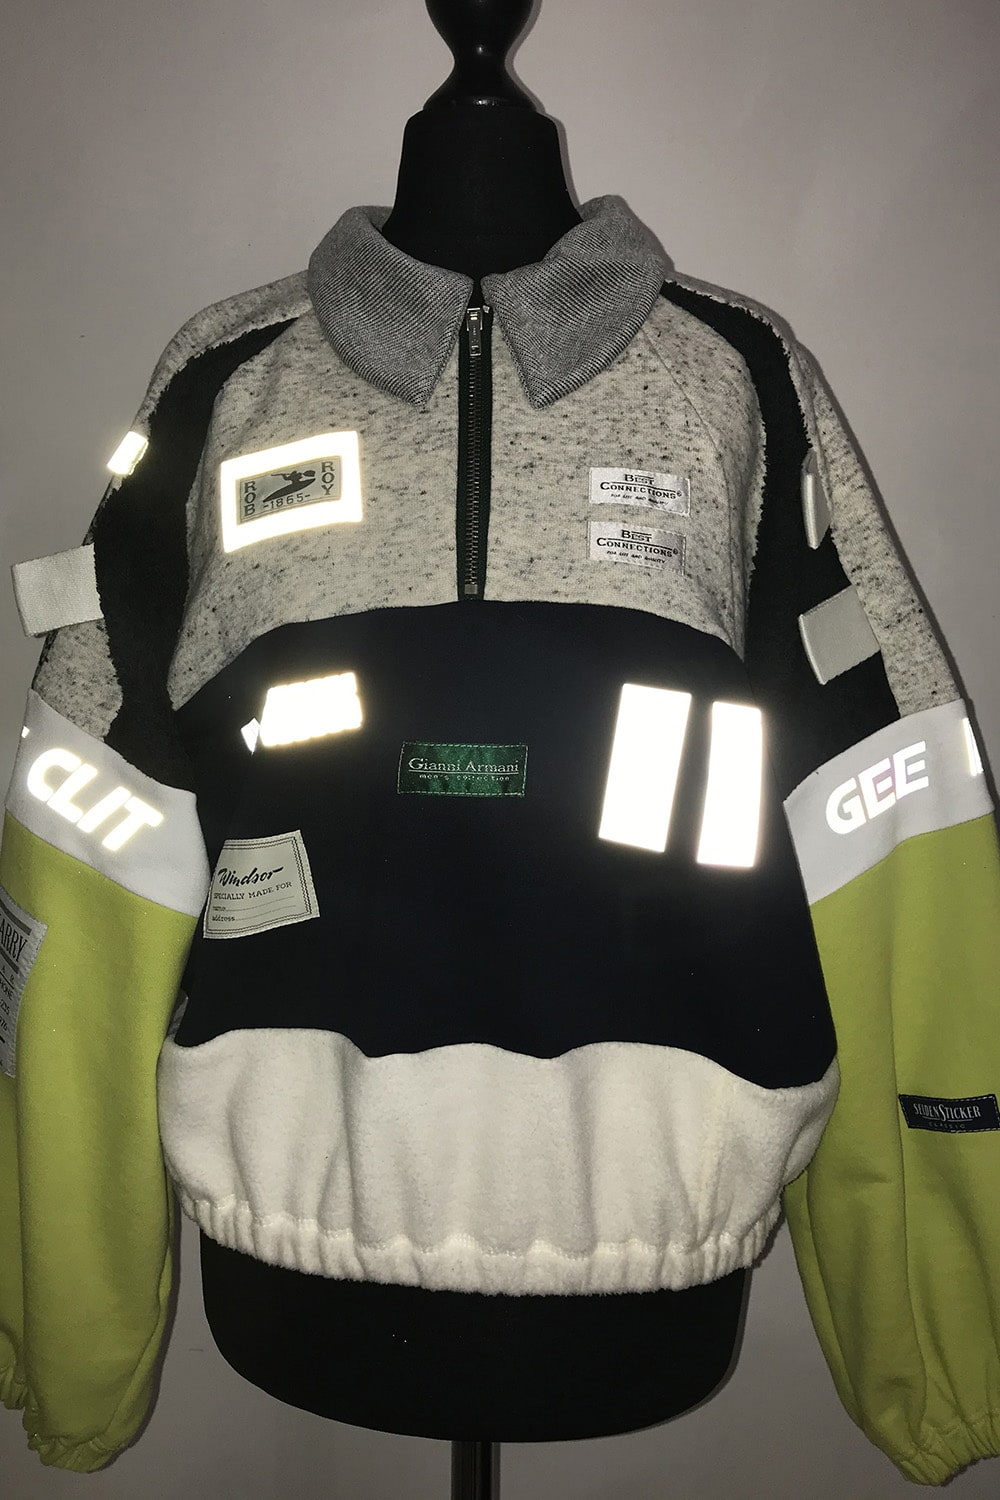 Gee Climate Jumper 11